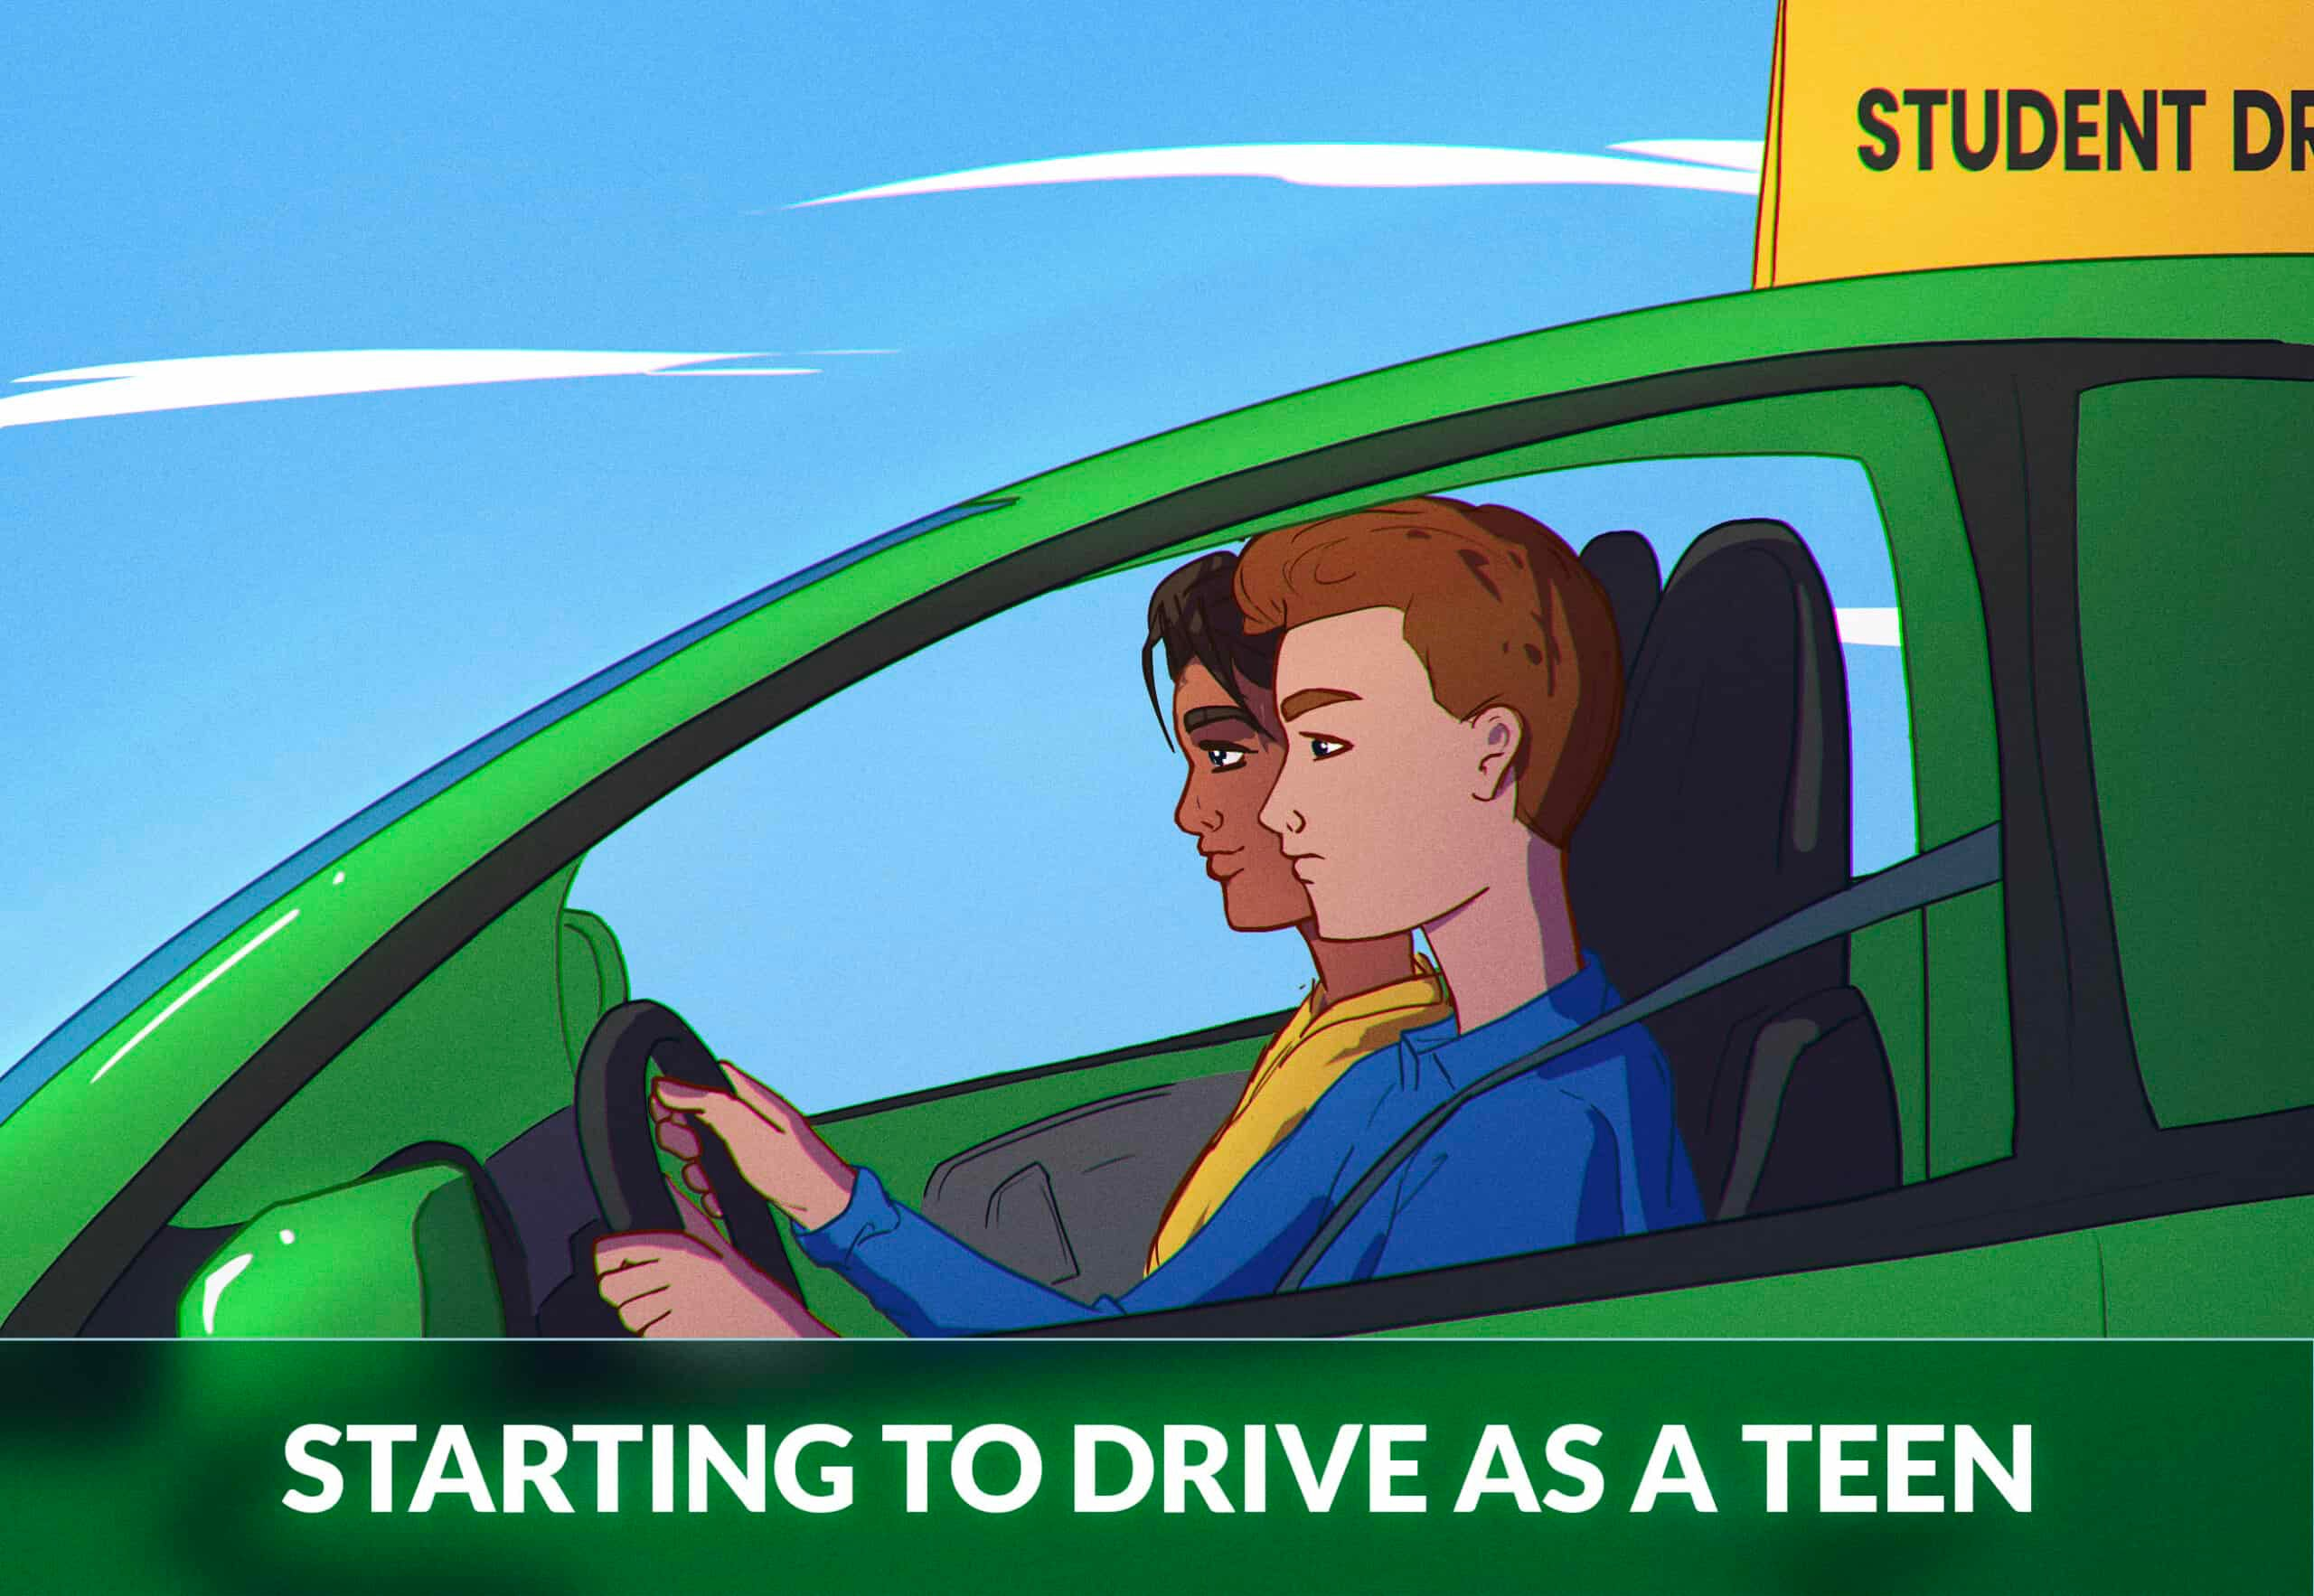 Starting to drive as a teen